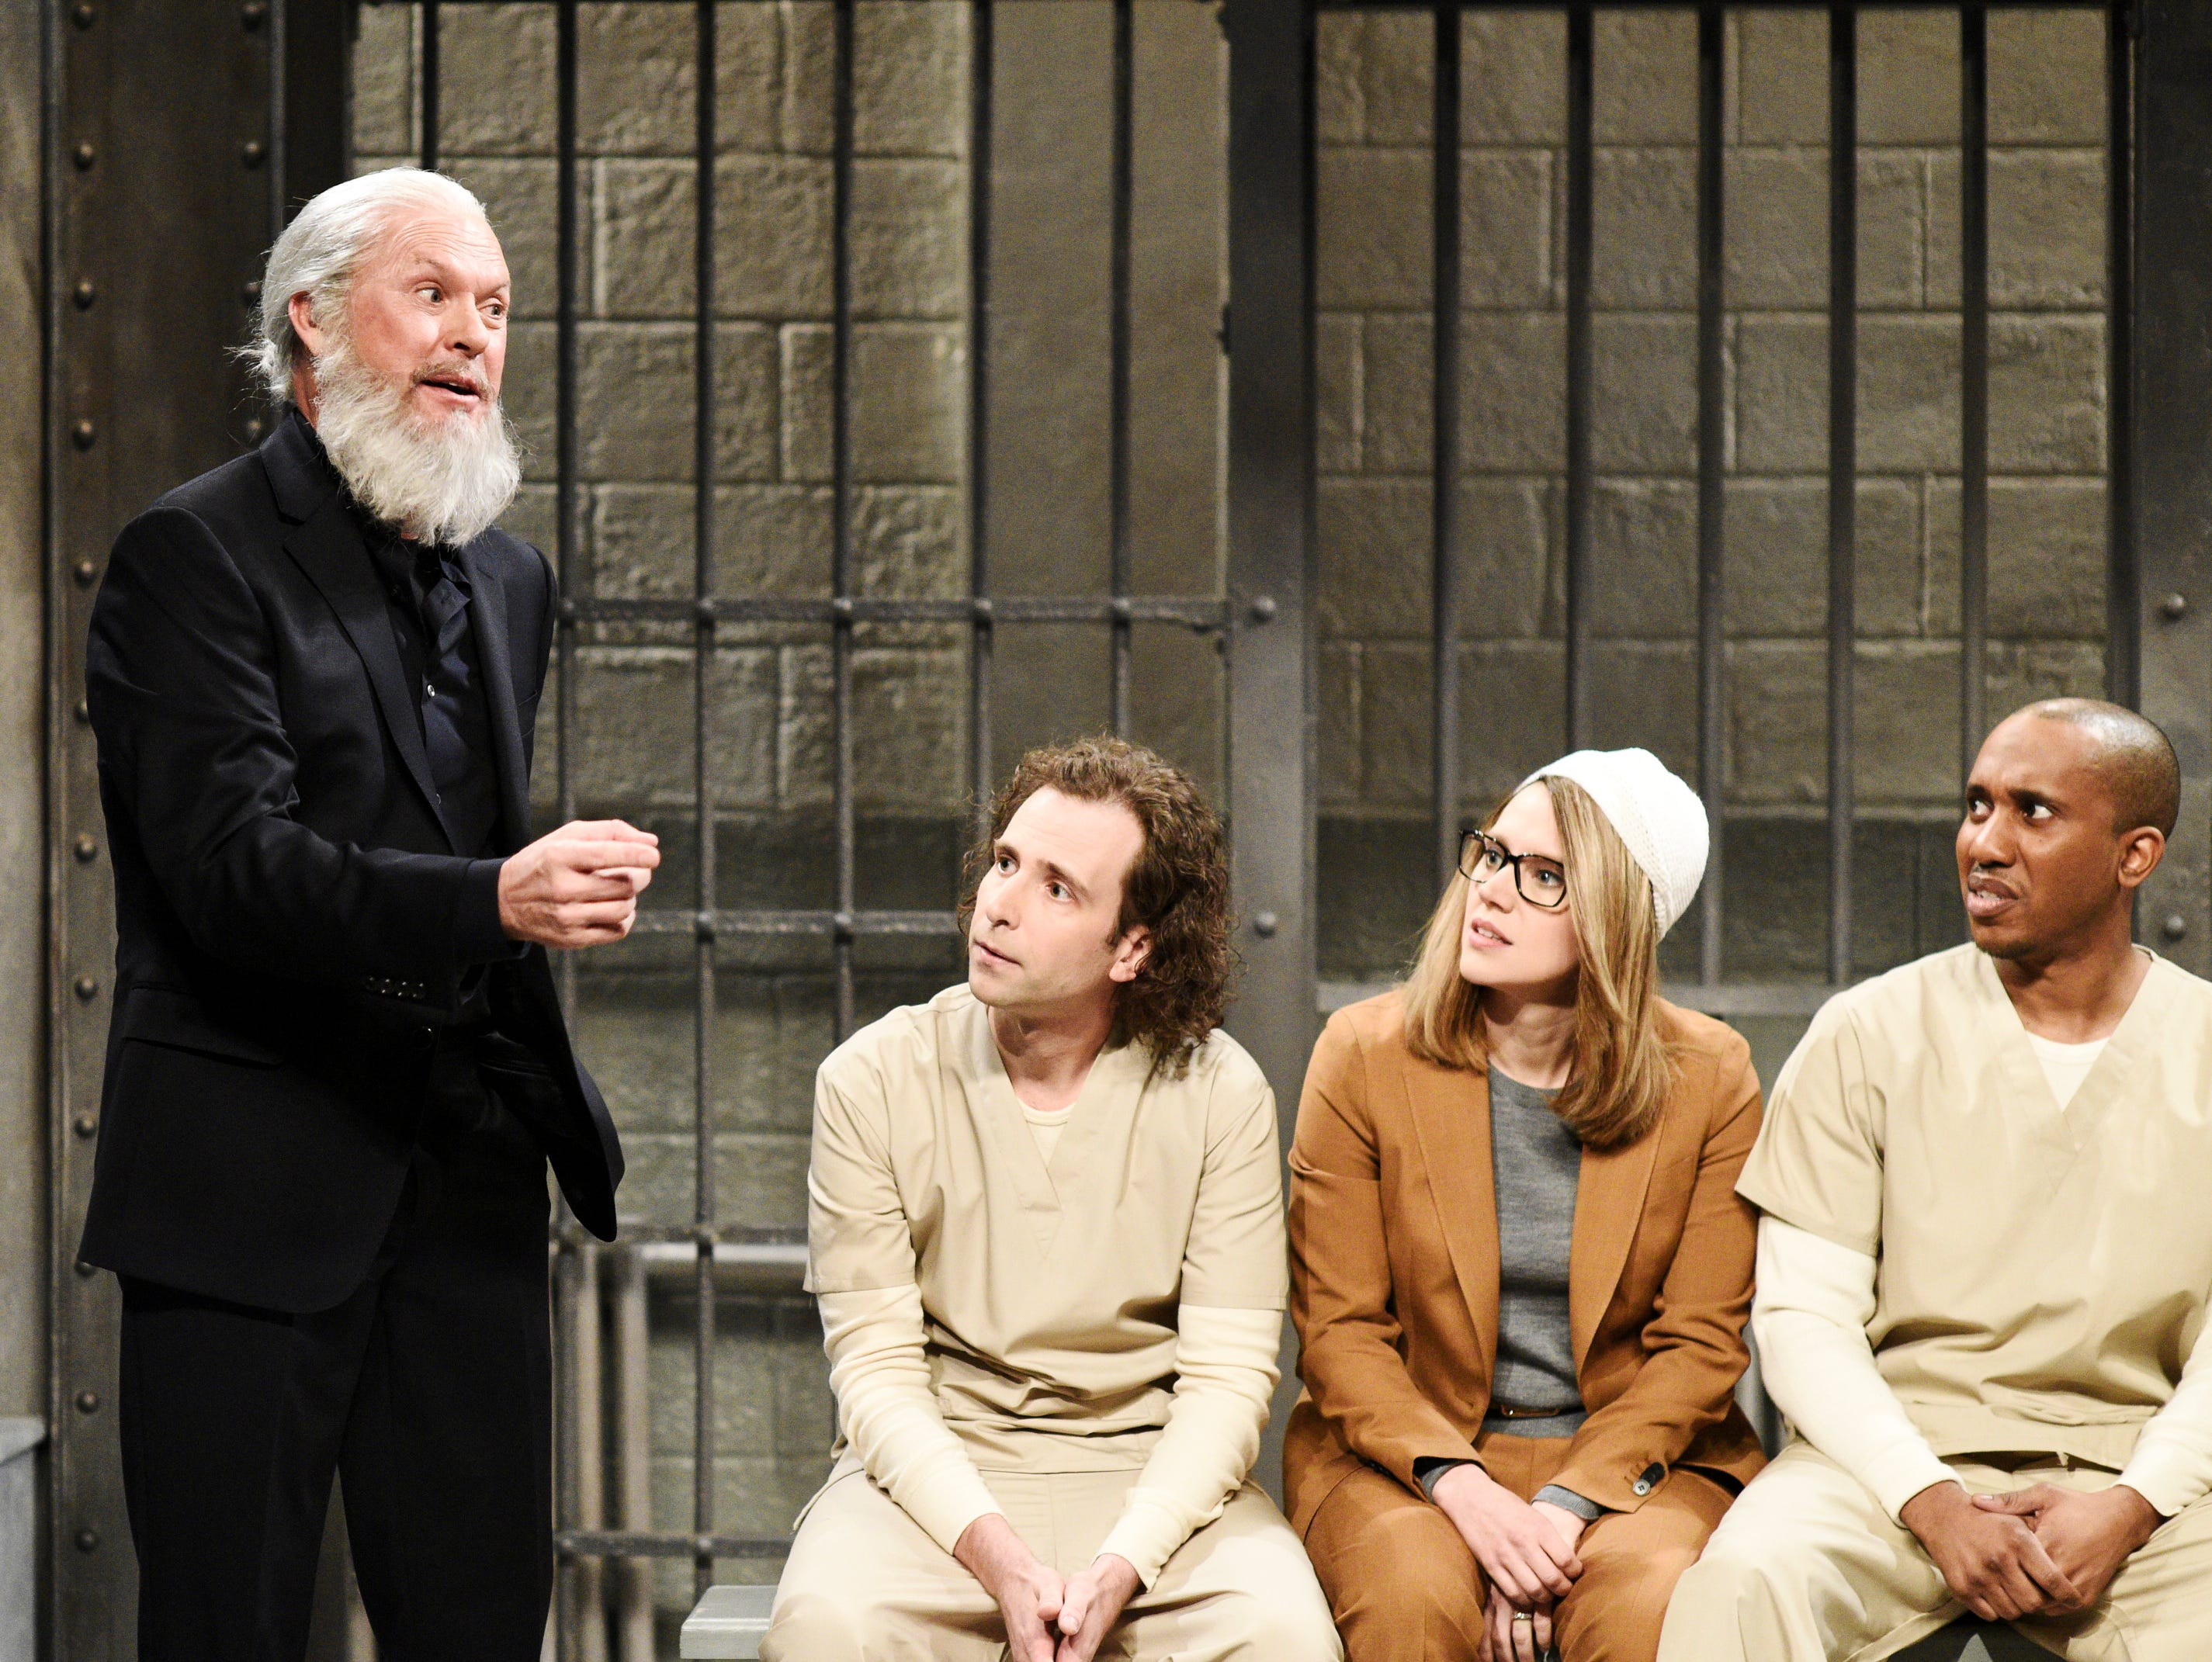 Michael Keaton made a surprise appearance as Julian Assange in the April 13 cold open that also included Kate McKinnon as actress Lori Loughlin and Kyle Mooney and Chris Redd as inmates stuck with jailed celebrities.